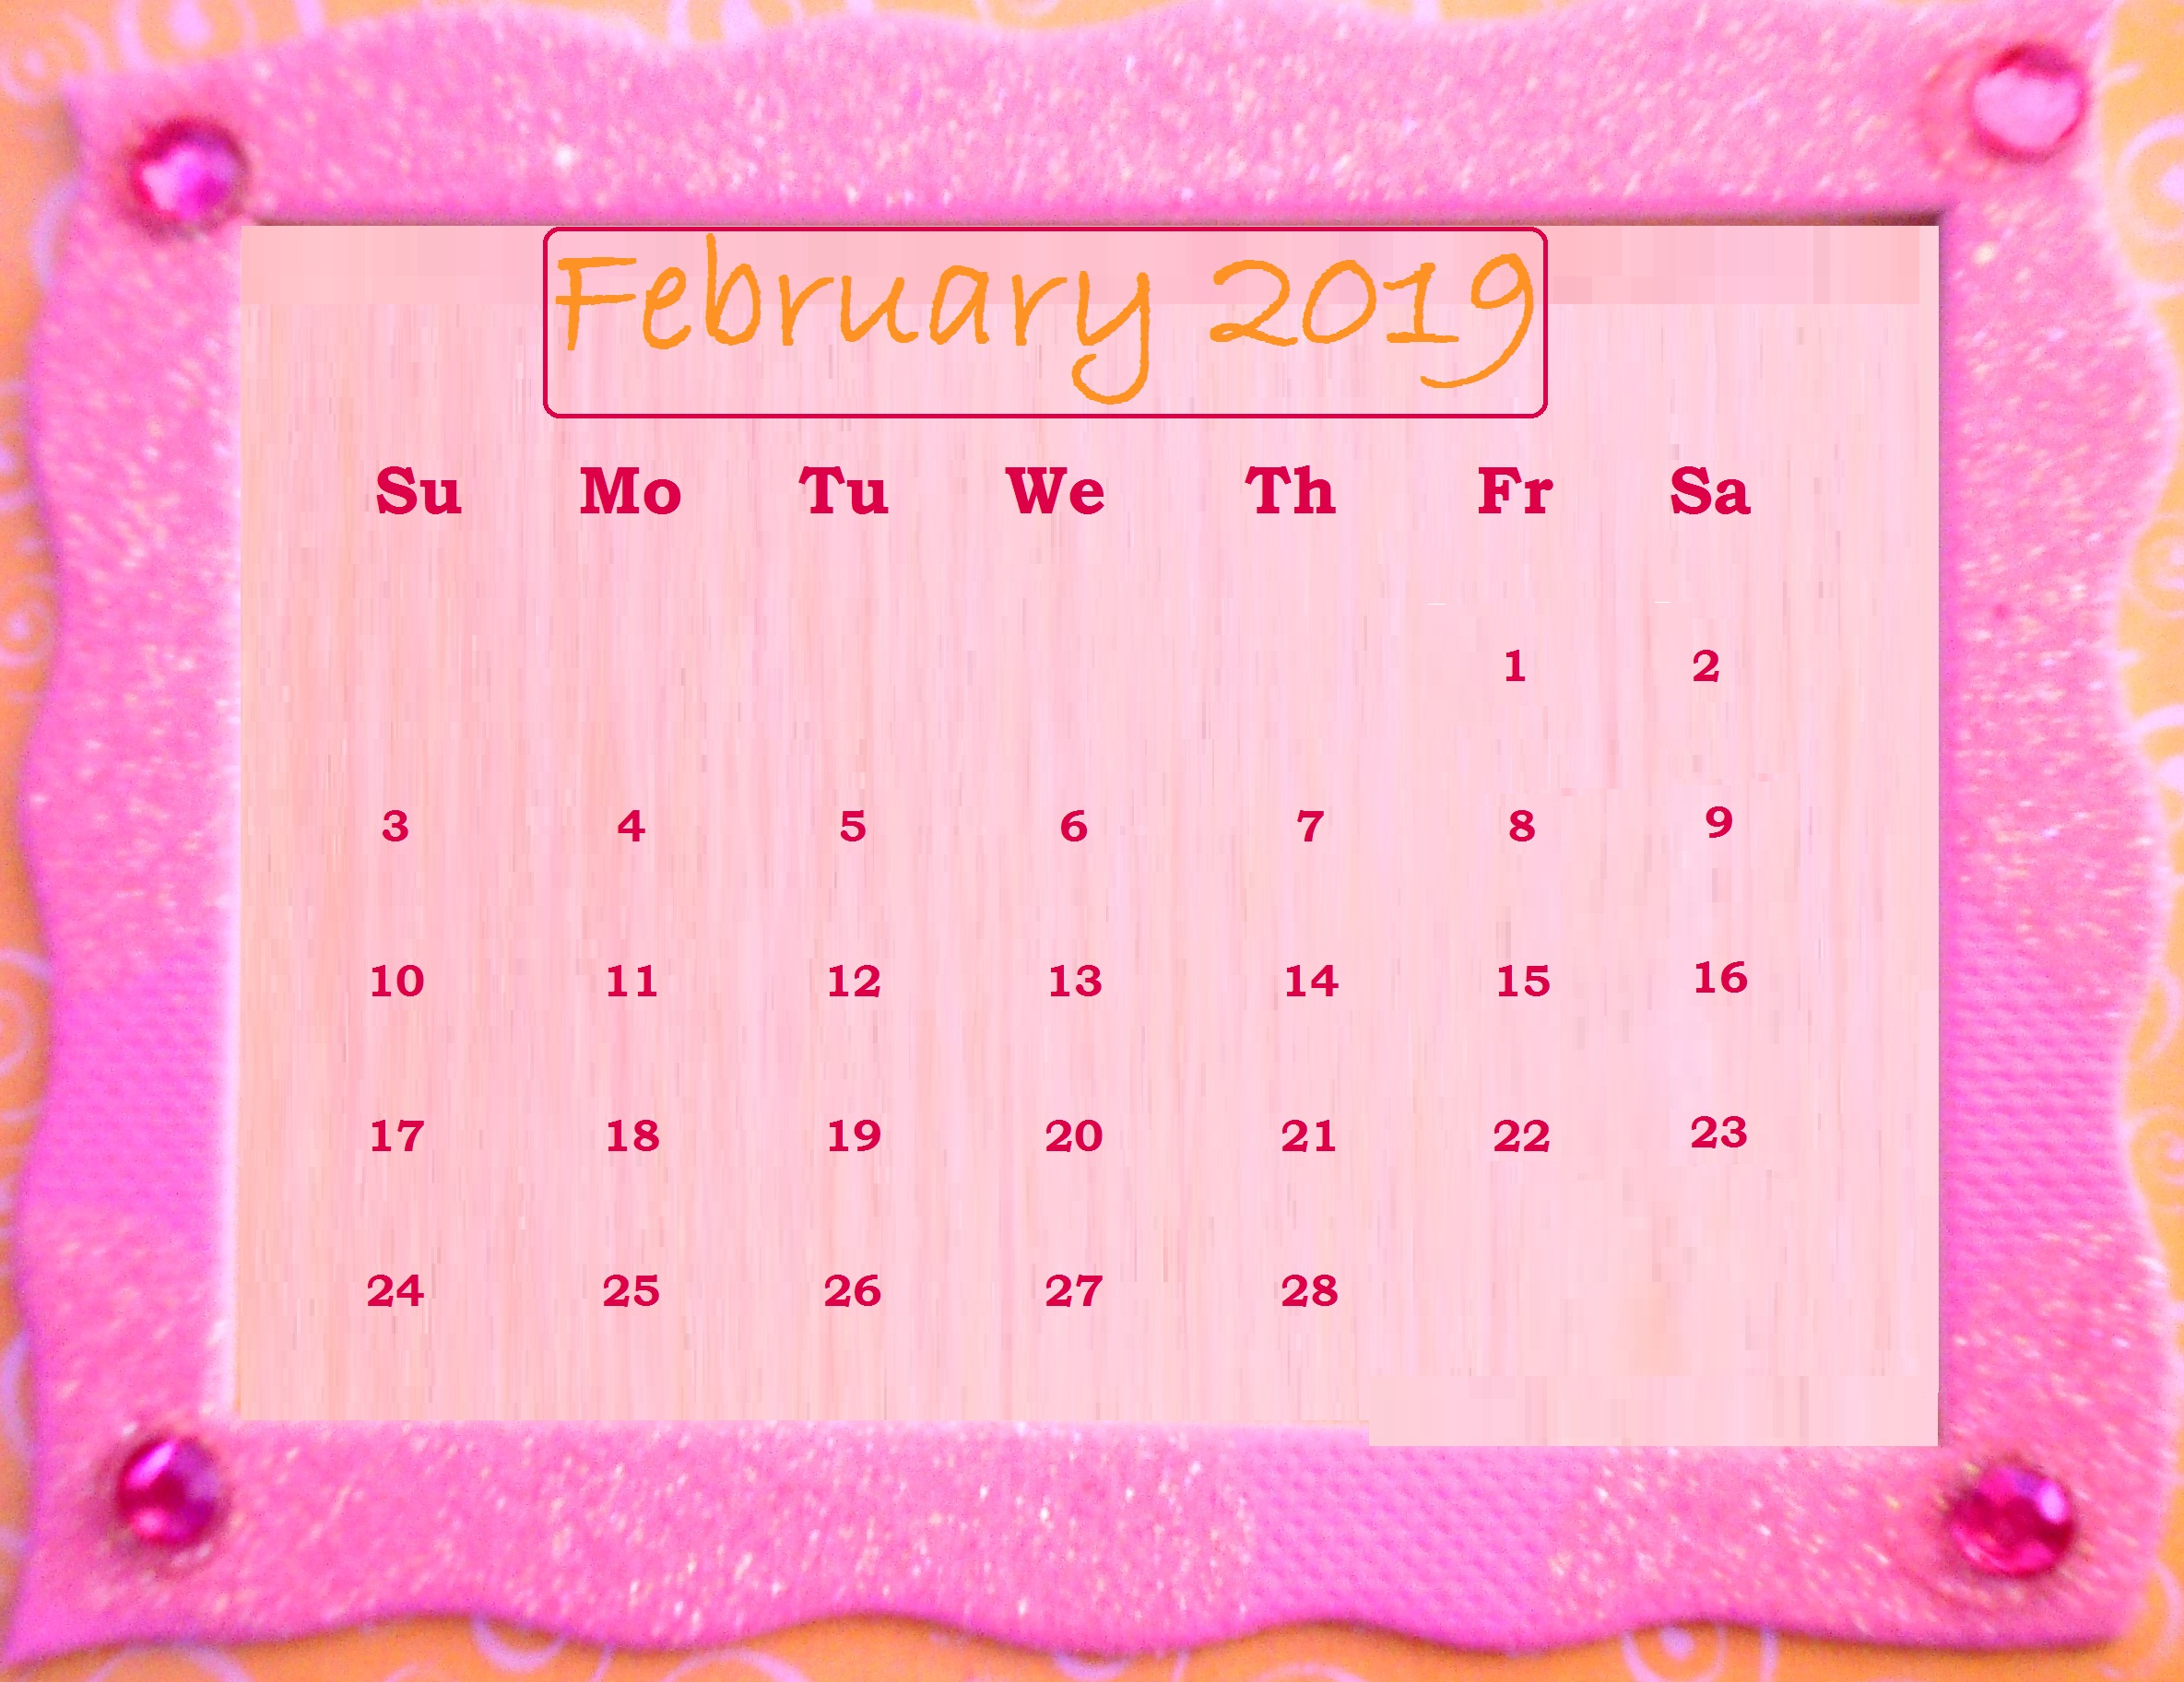 February 2019 Friendship day Desktop Calendar Wallpaper